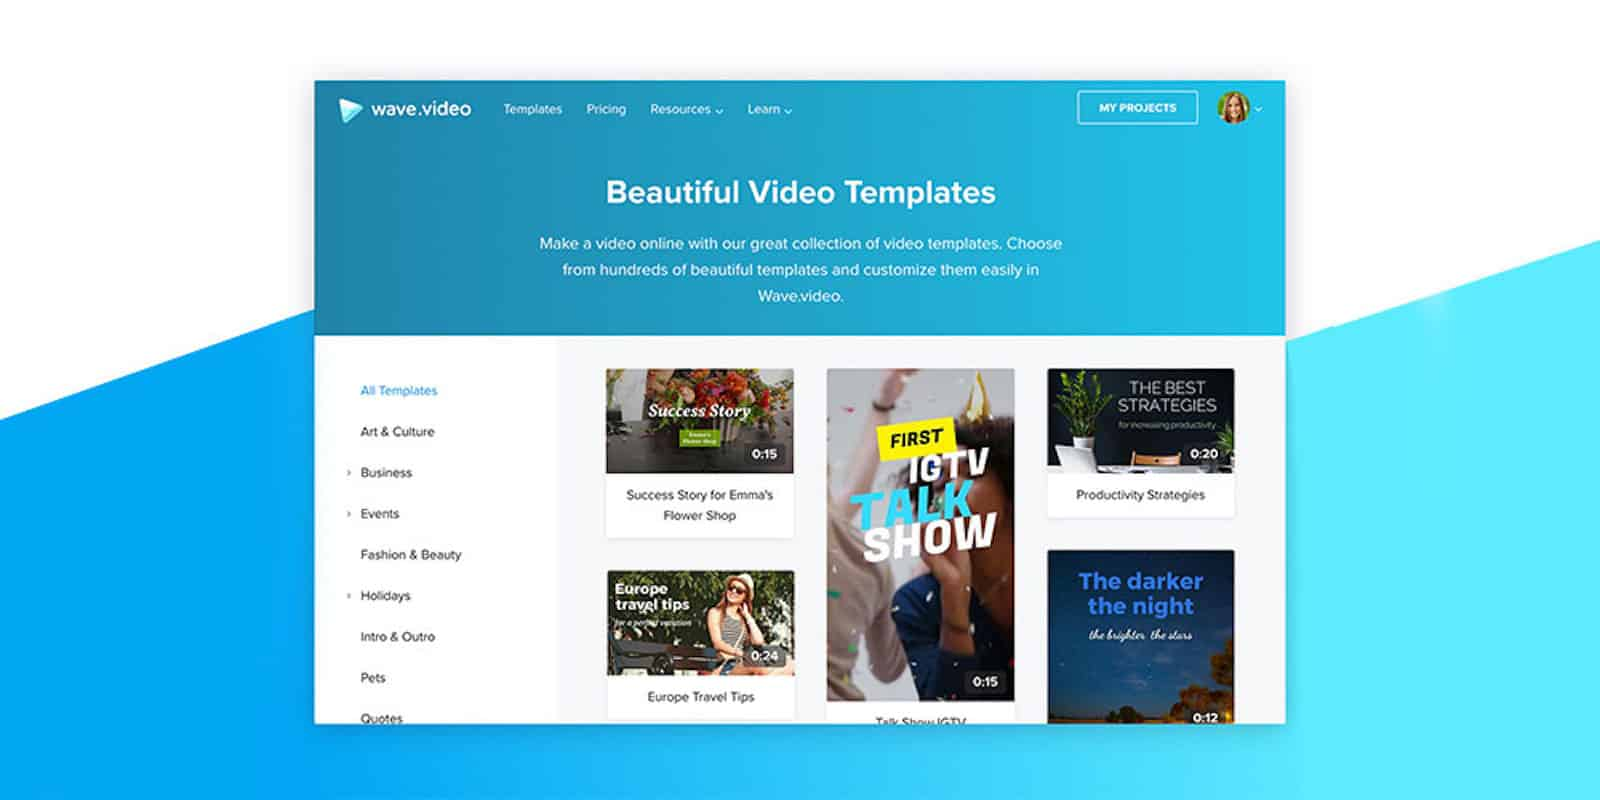 Making videos can do a lot for your brand or business, and this app makes it easy.